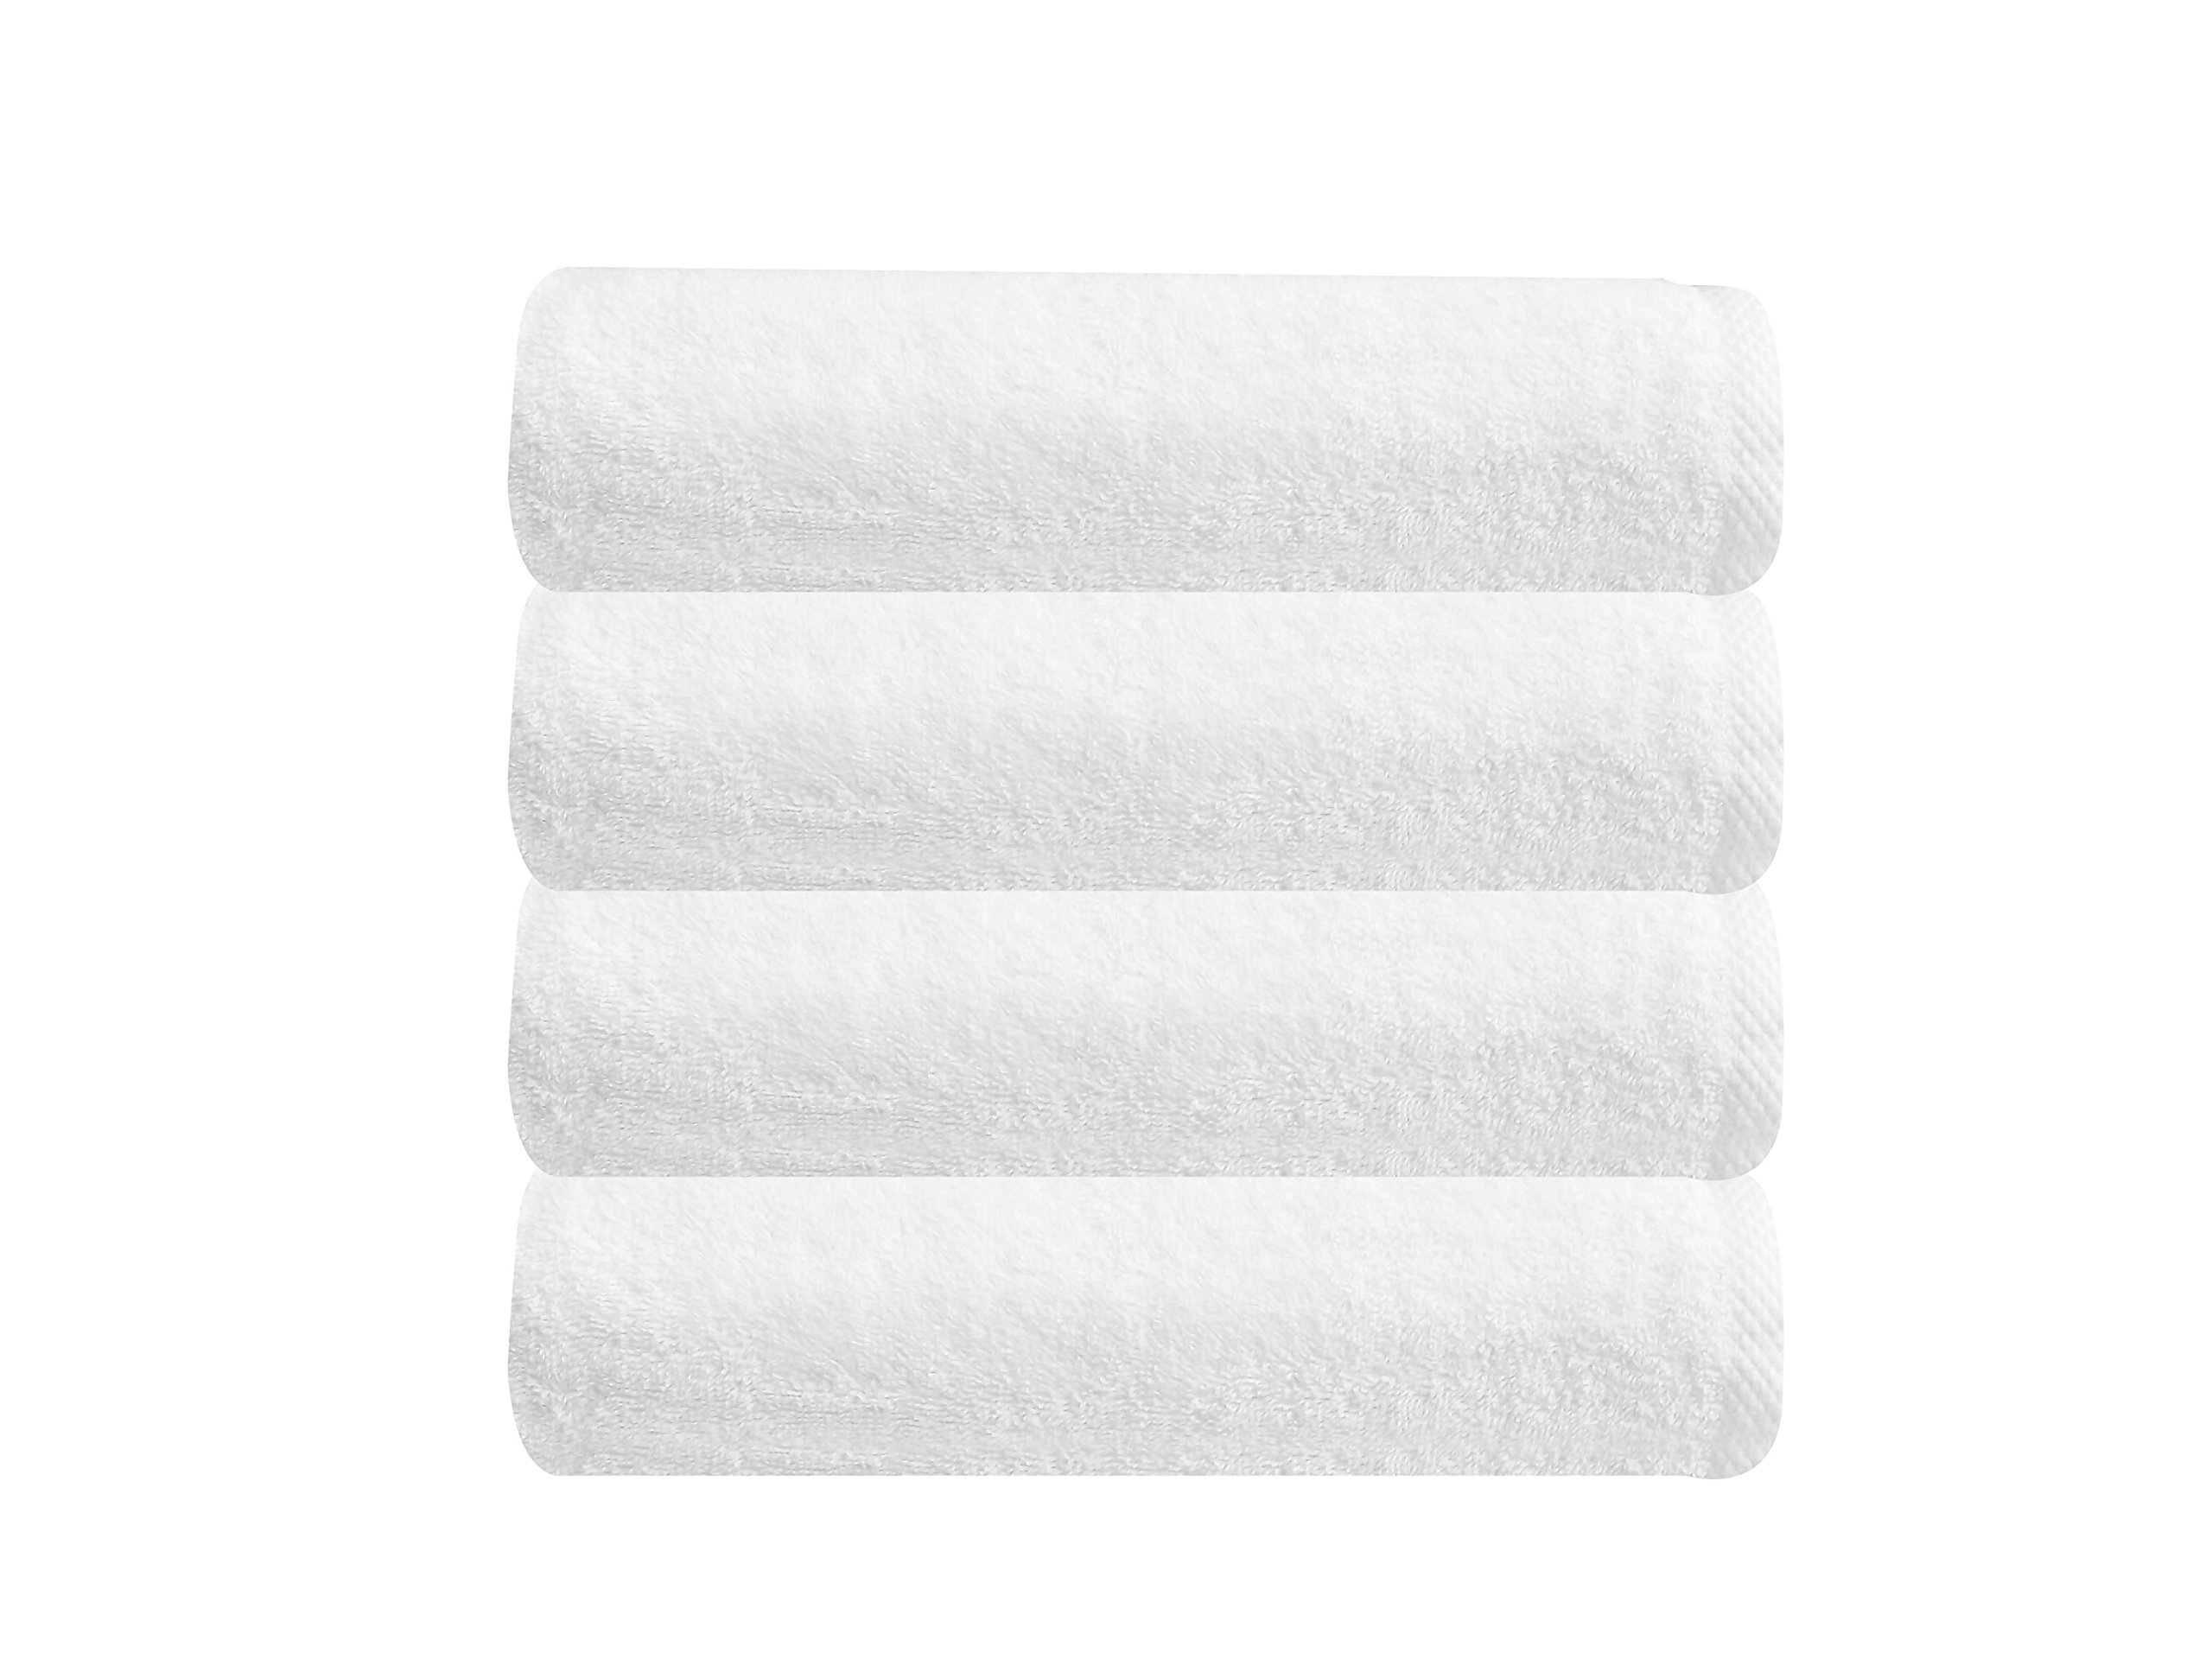 SALBAKOS Classic Turkish Cotton Towels | Ultra Soft & Absorbent Hotel & Spa Collection 550 GSM Bath Towels, White